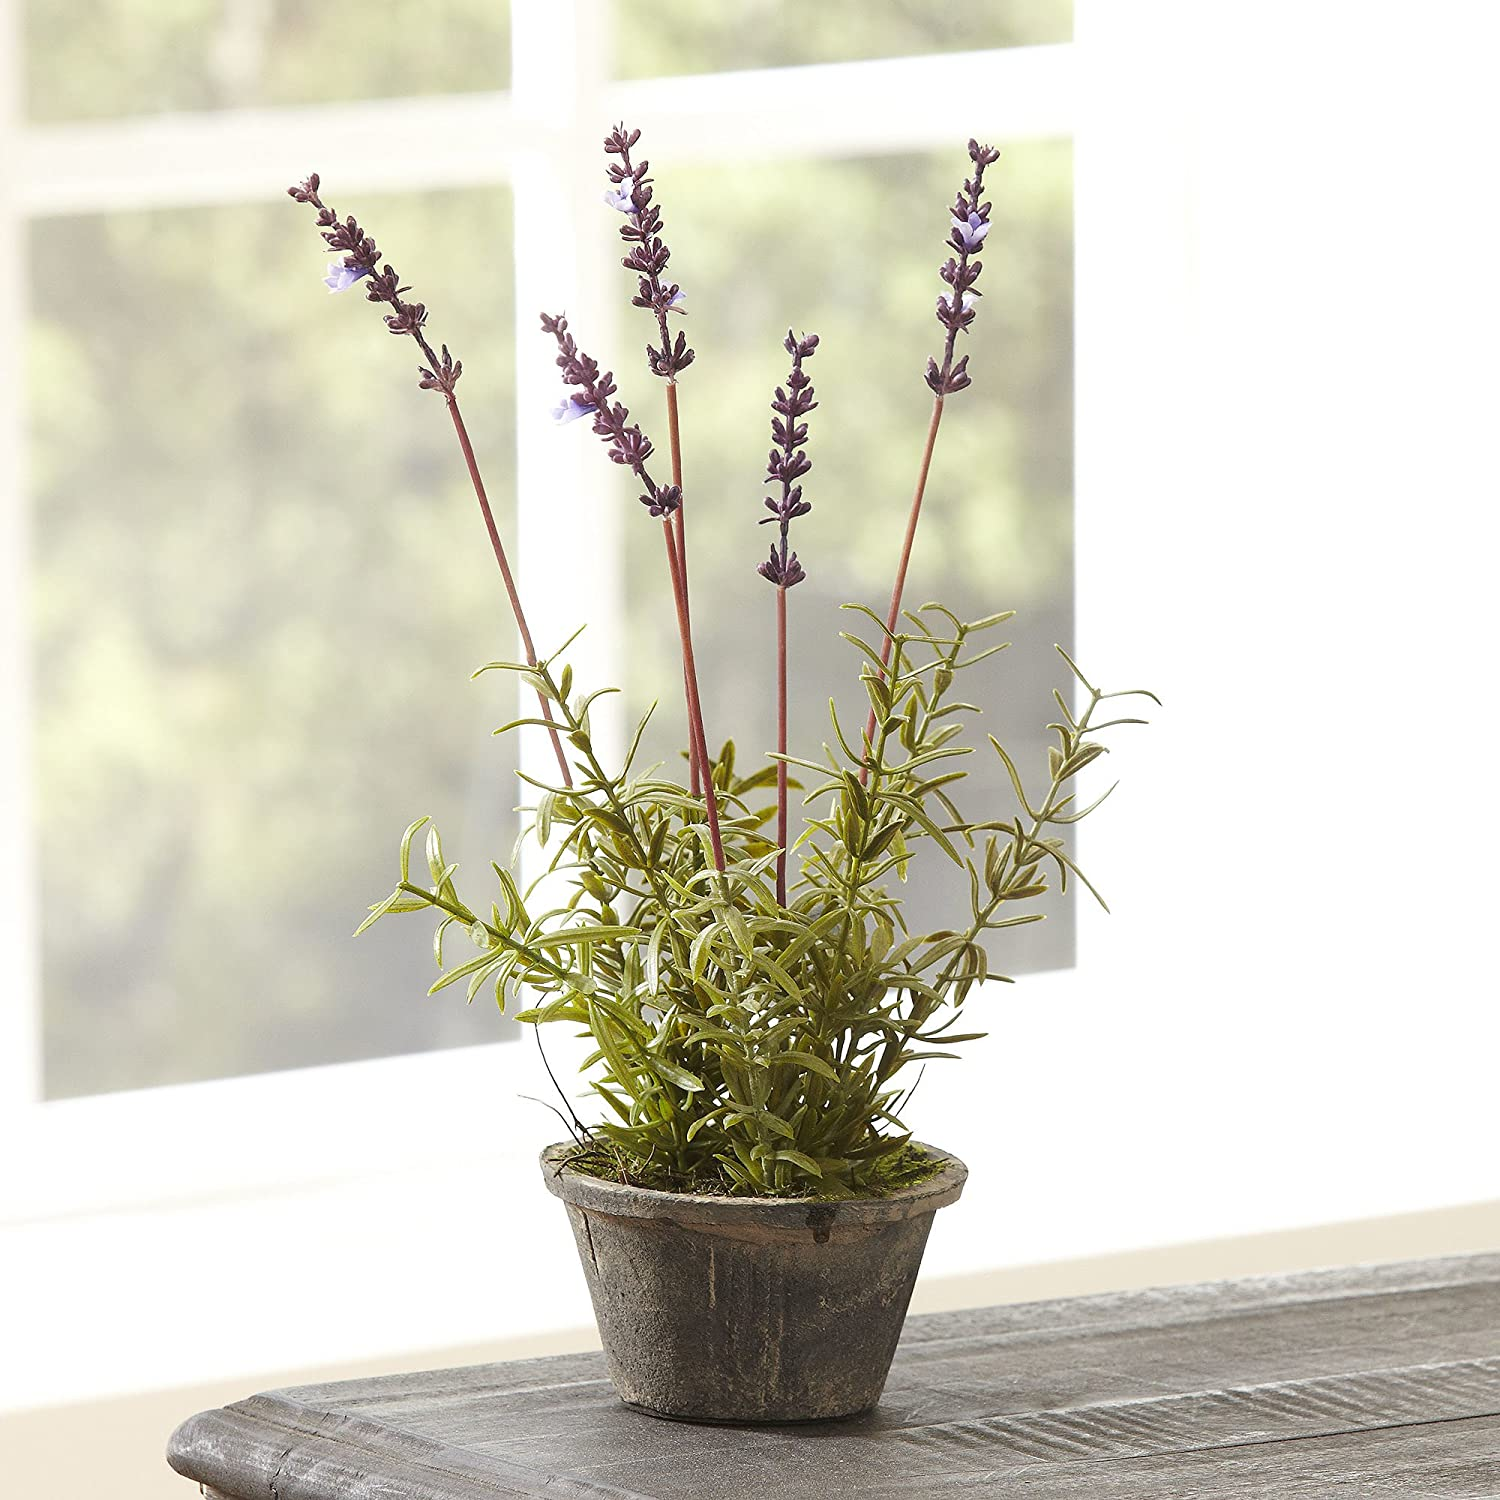 Napa Home & Garden Conservatory French Lavender Potted HERB 12.5-in.